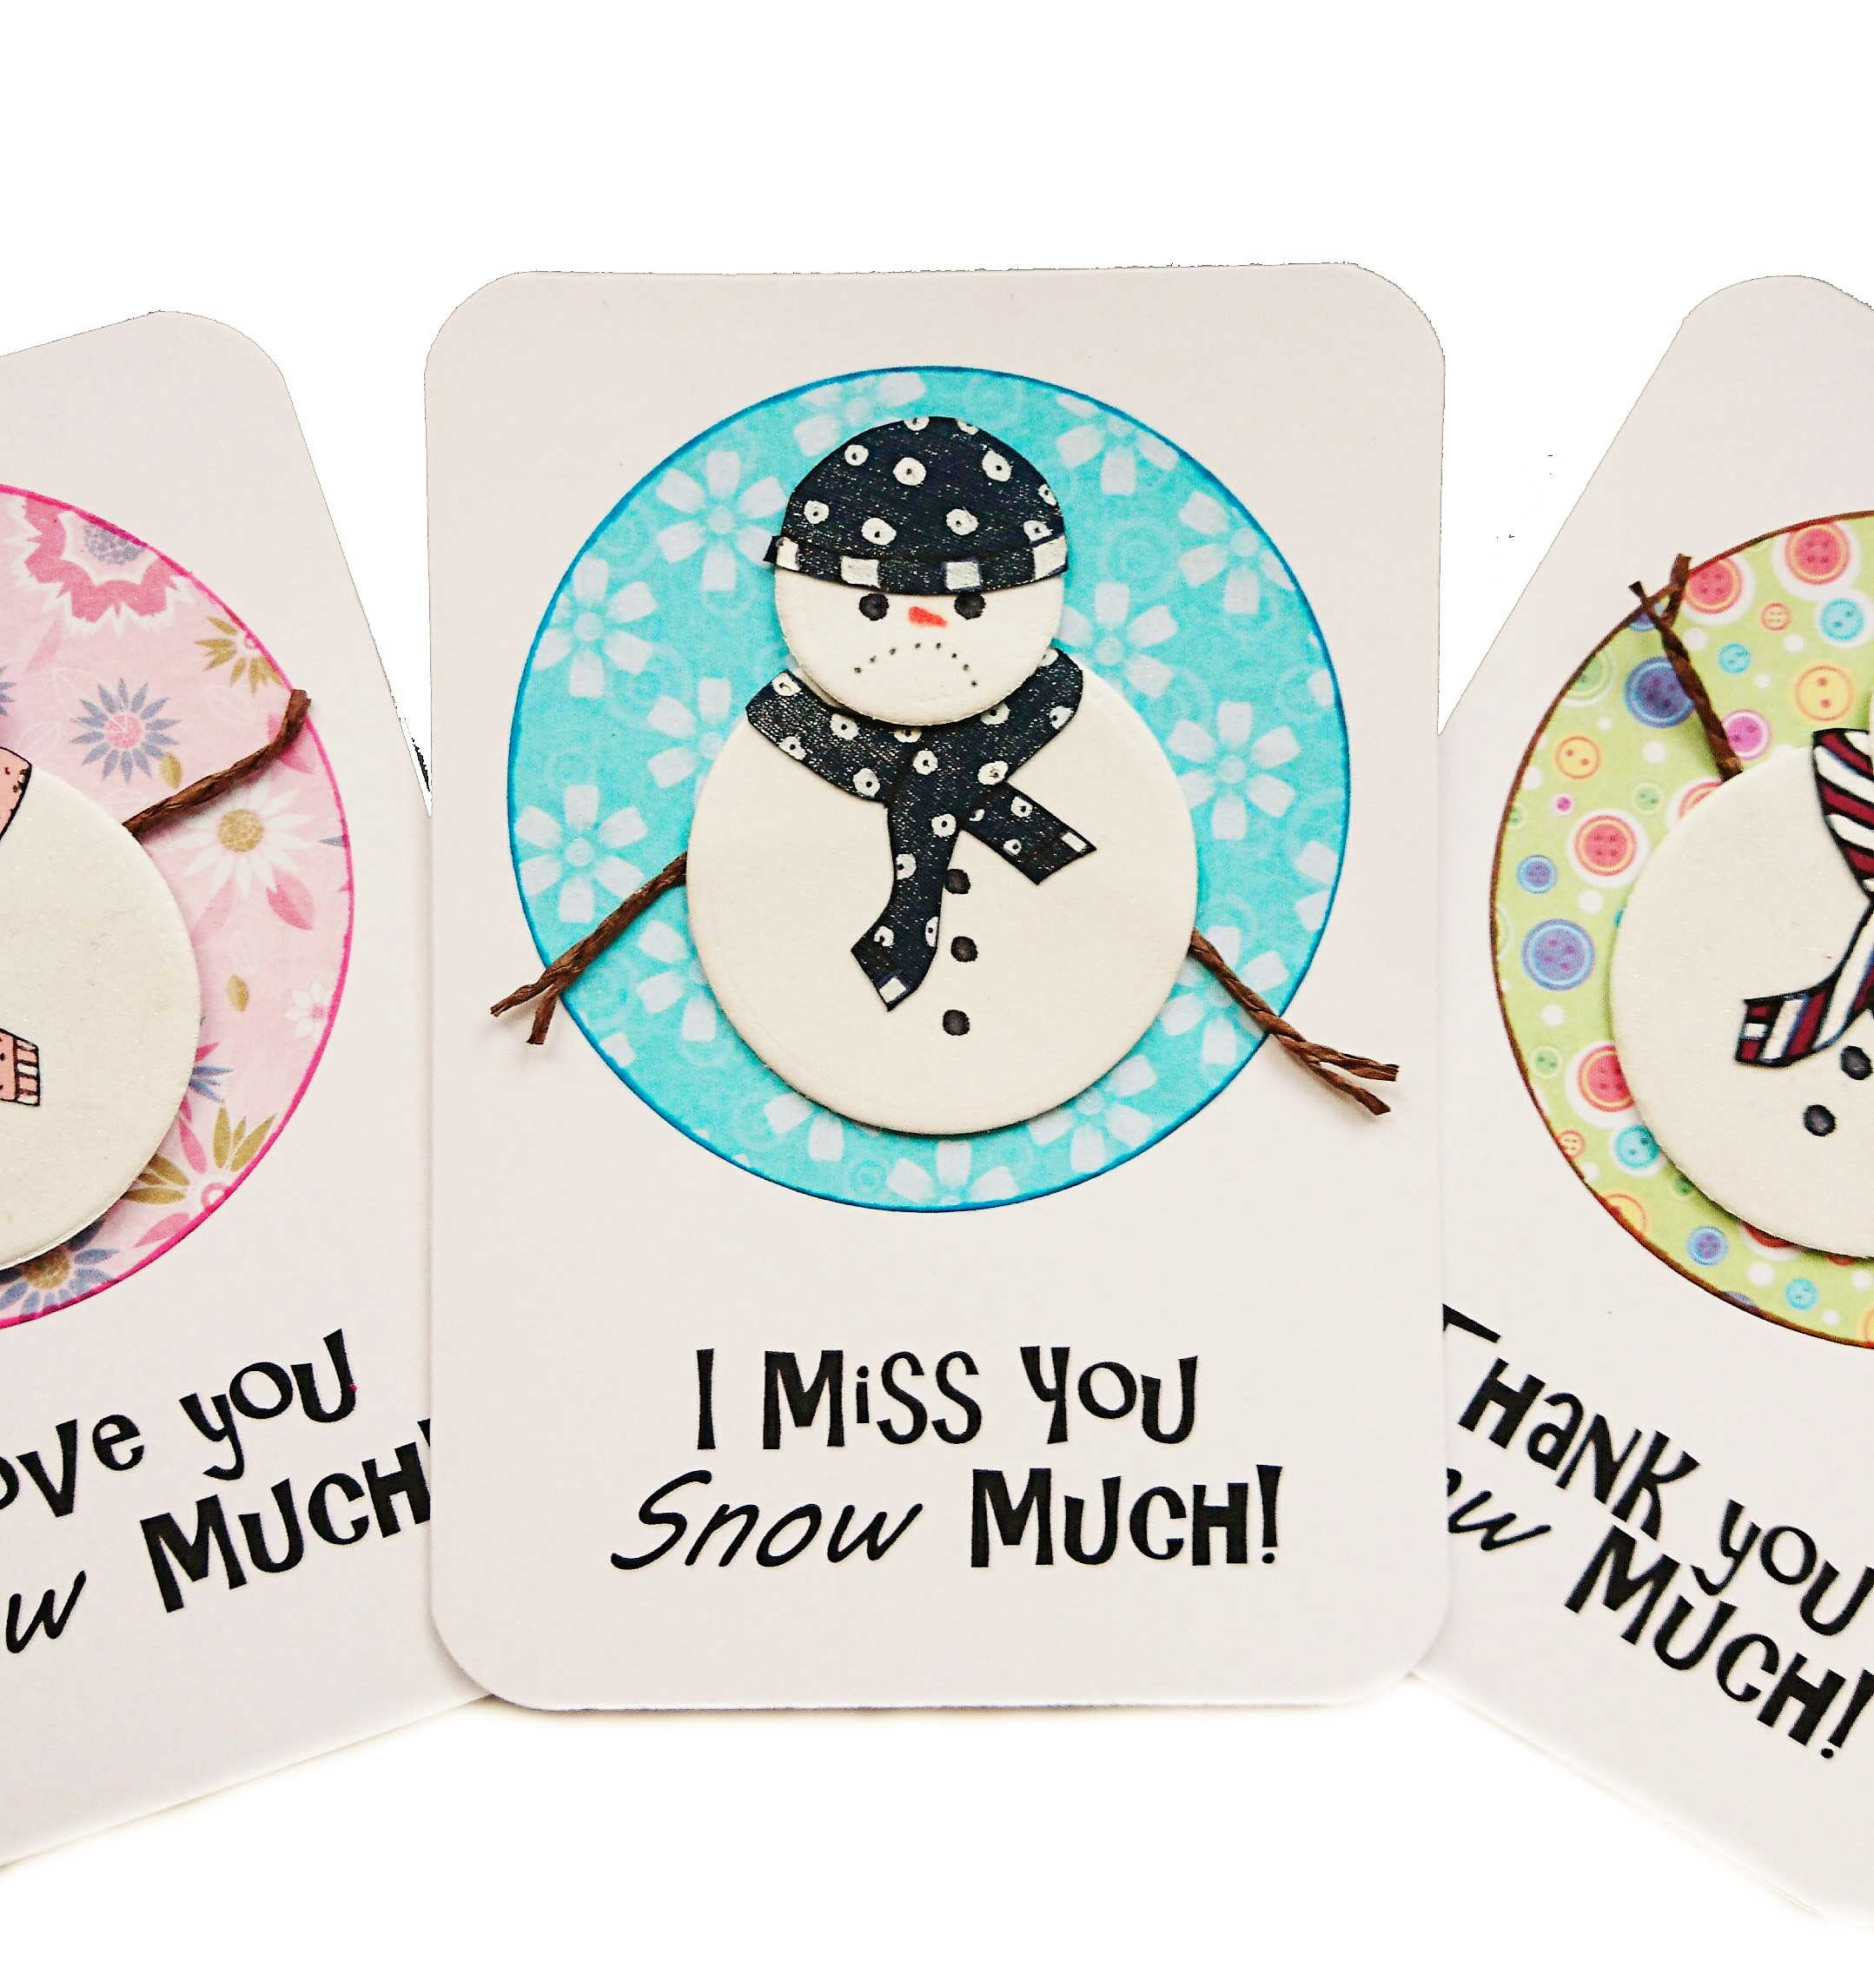 I-miss-you-snow-much